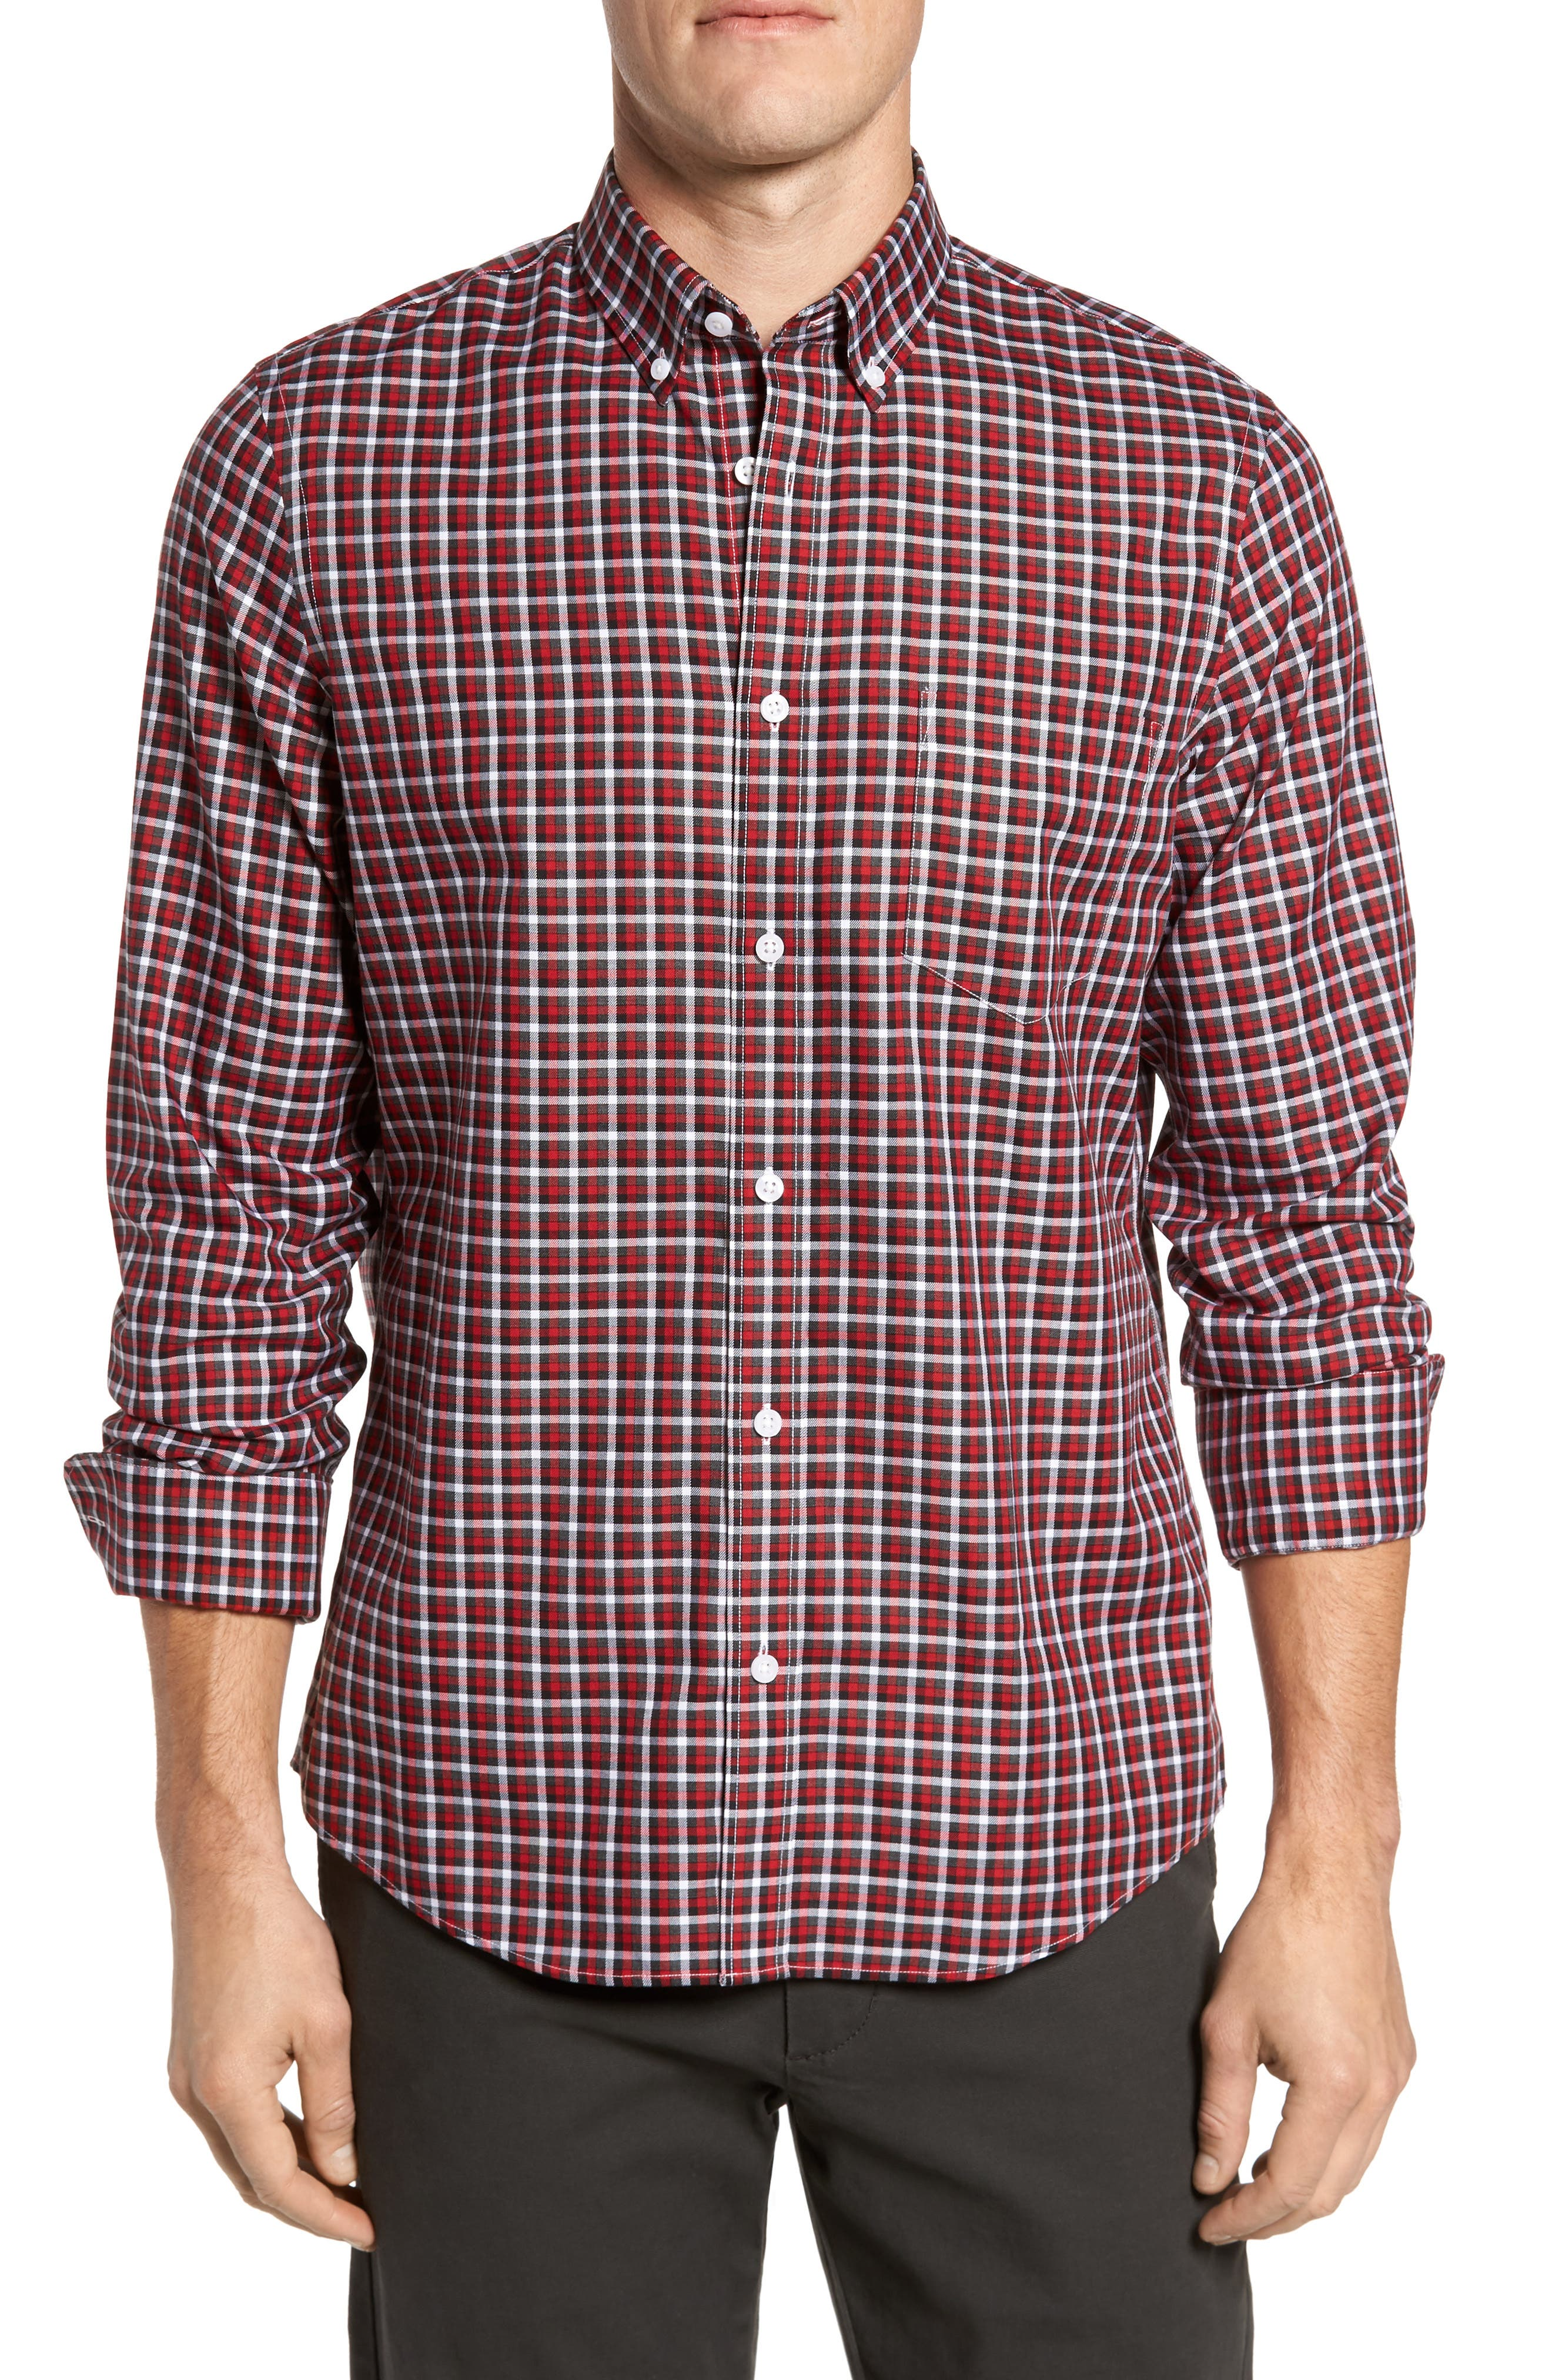 Smartcare<sup>™</sup> Regular Fit Plaid Sport Shirt,                             Main thumbnail 1, color,                             Red Grey Heather Check